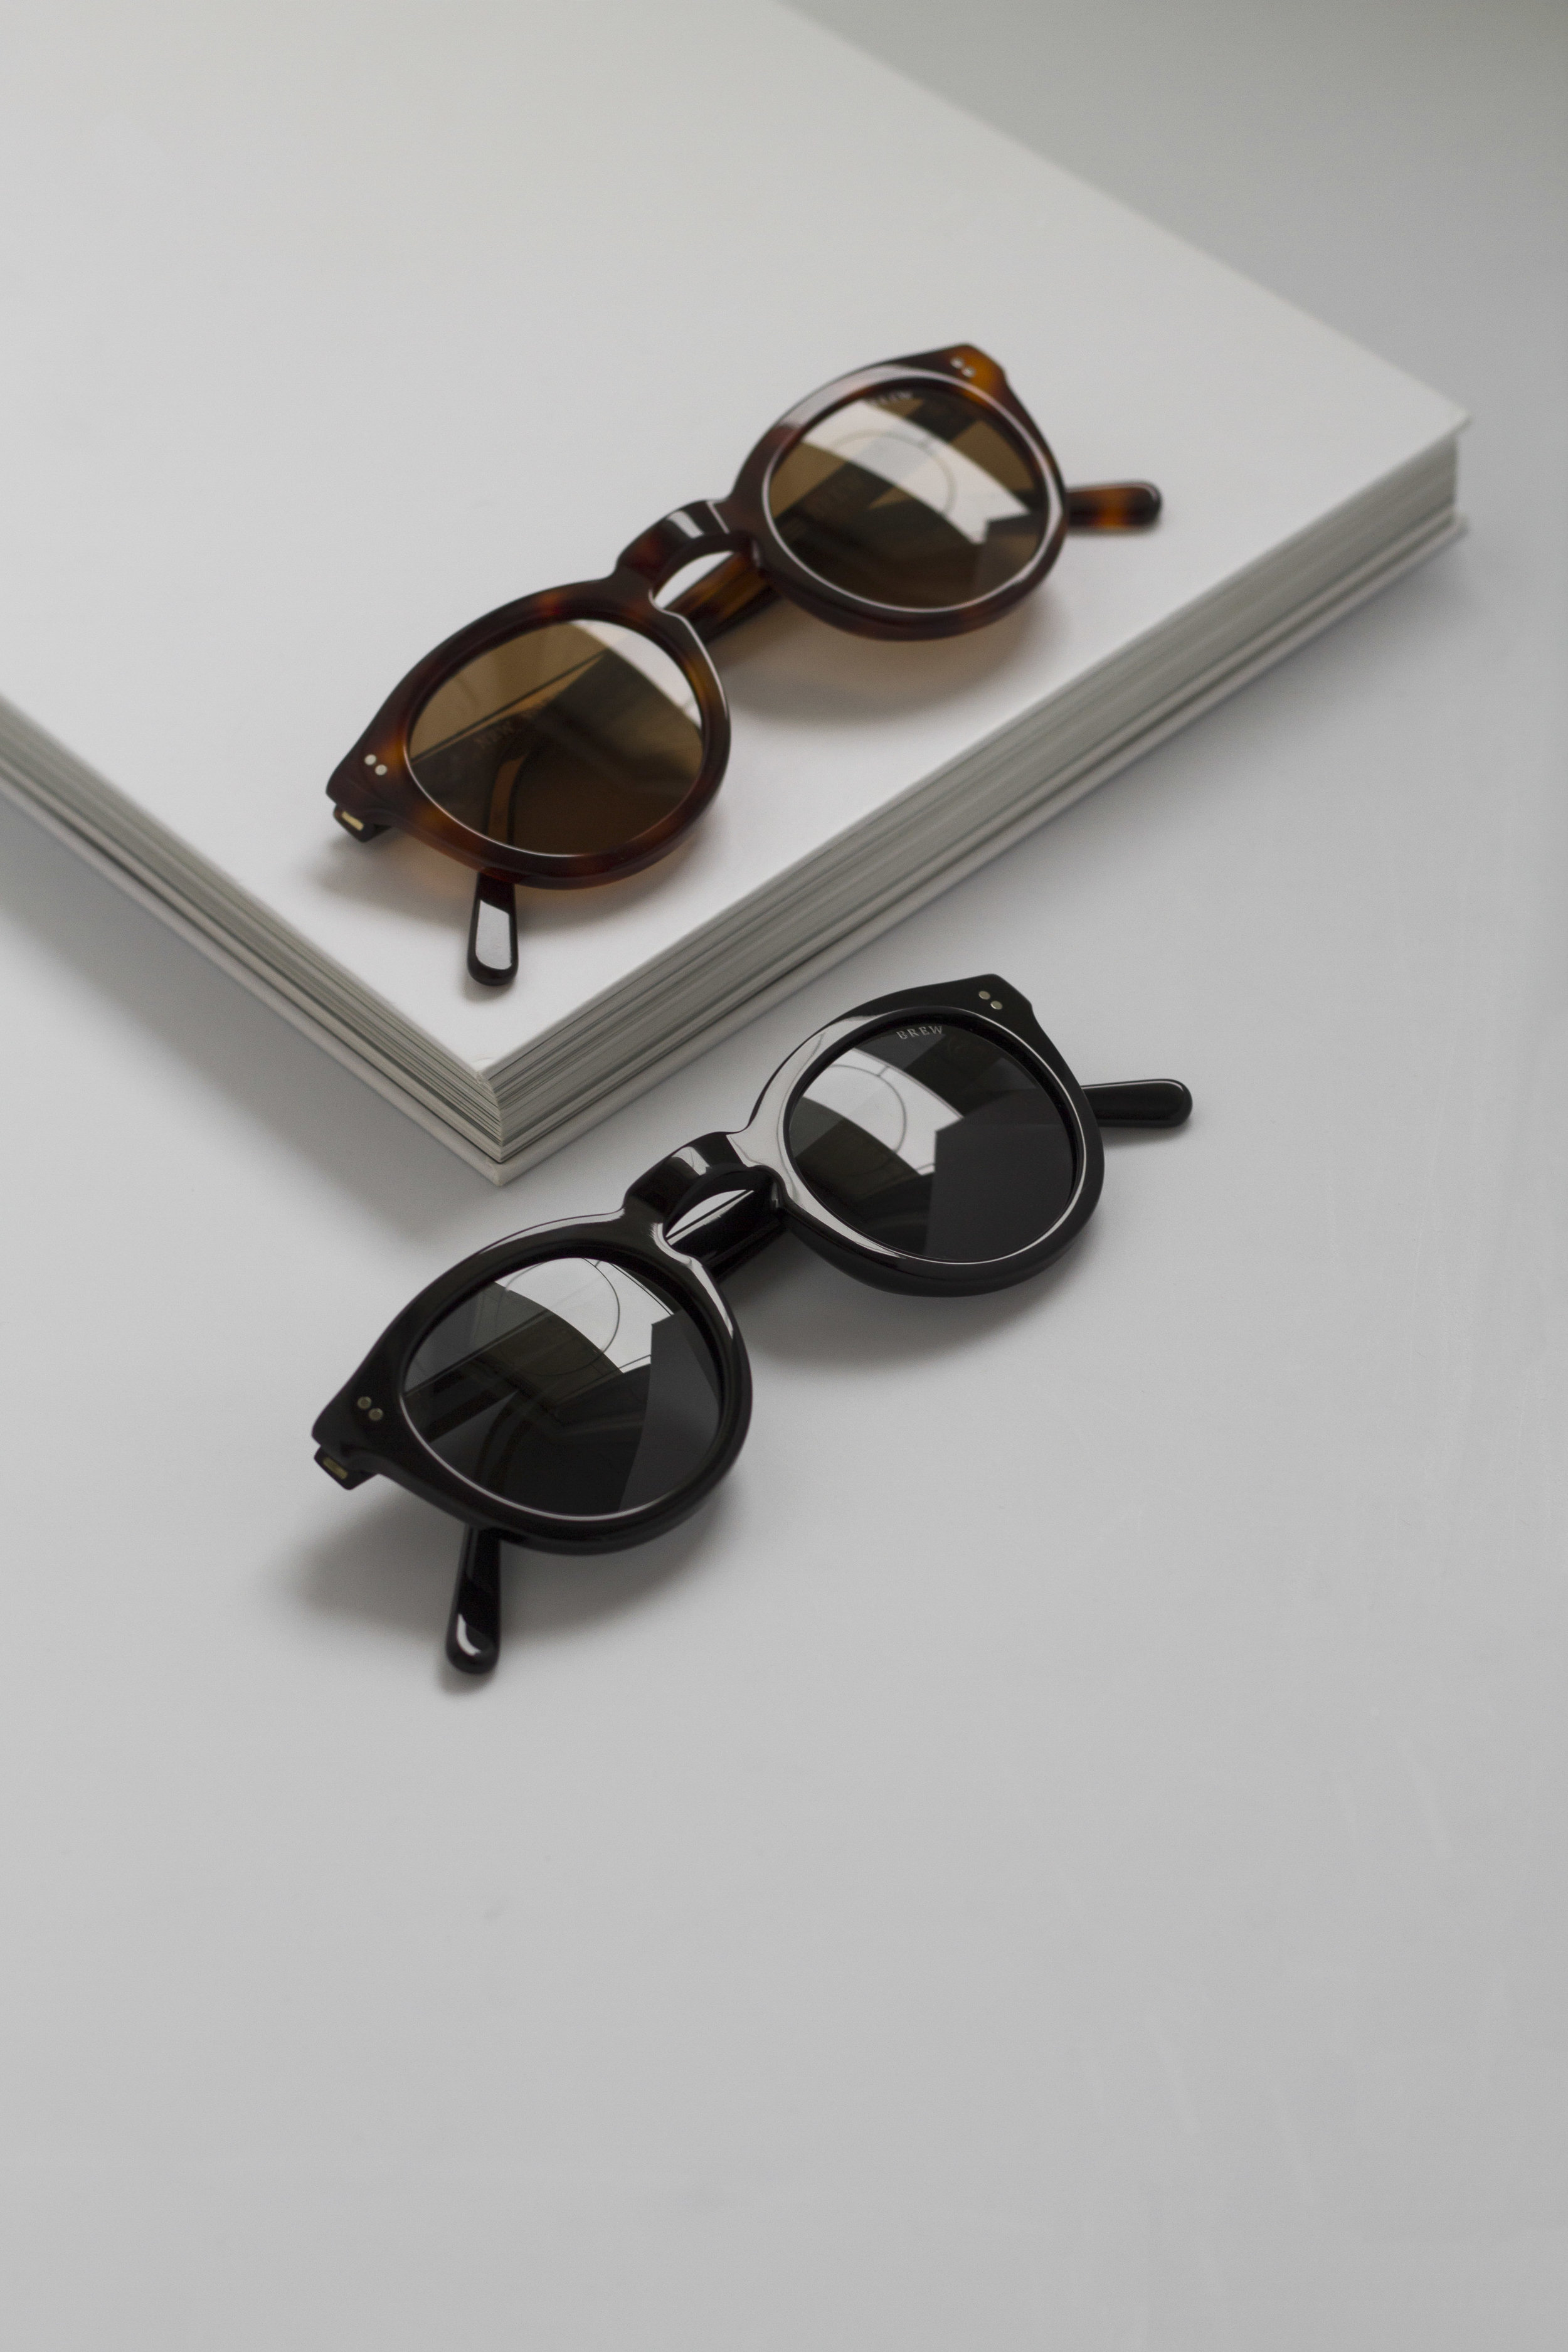 Sunglass Pair 002.jpg